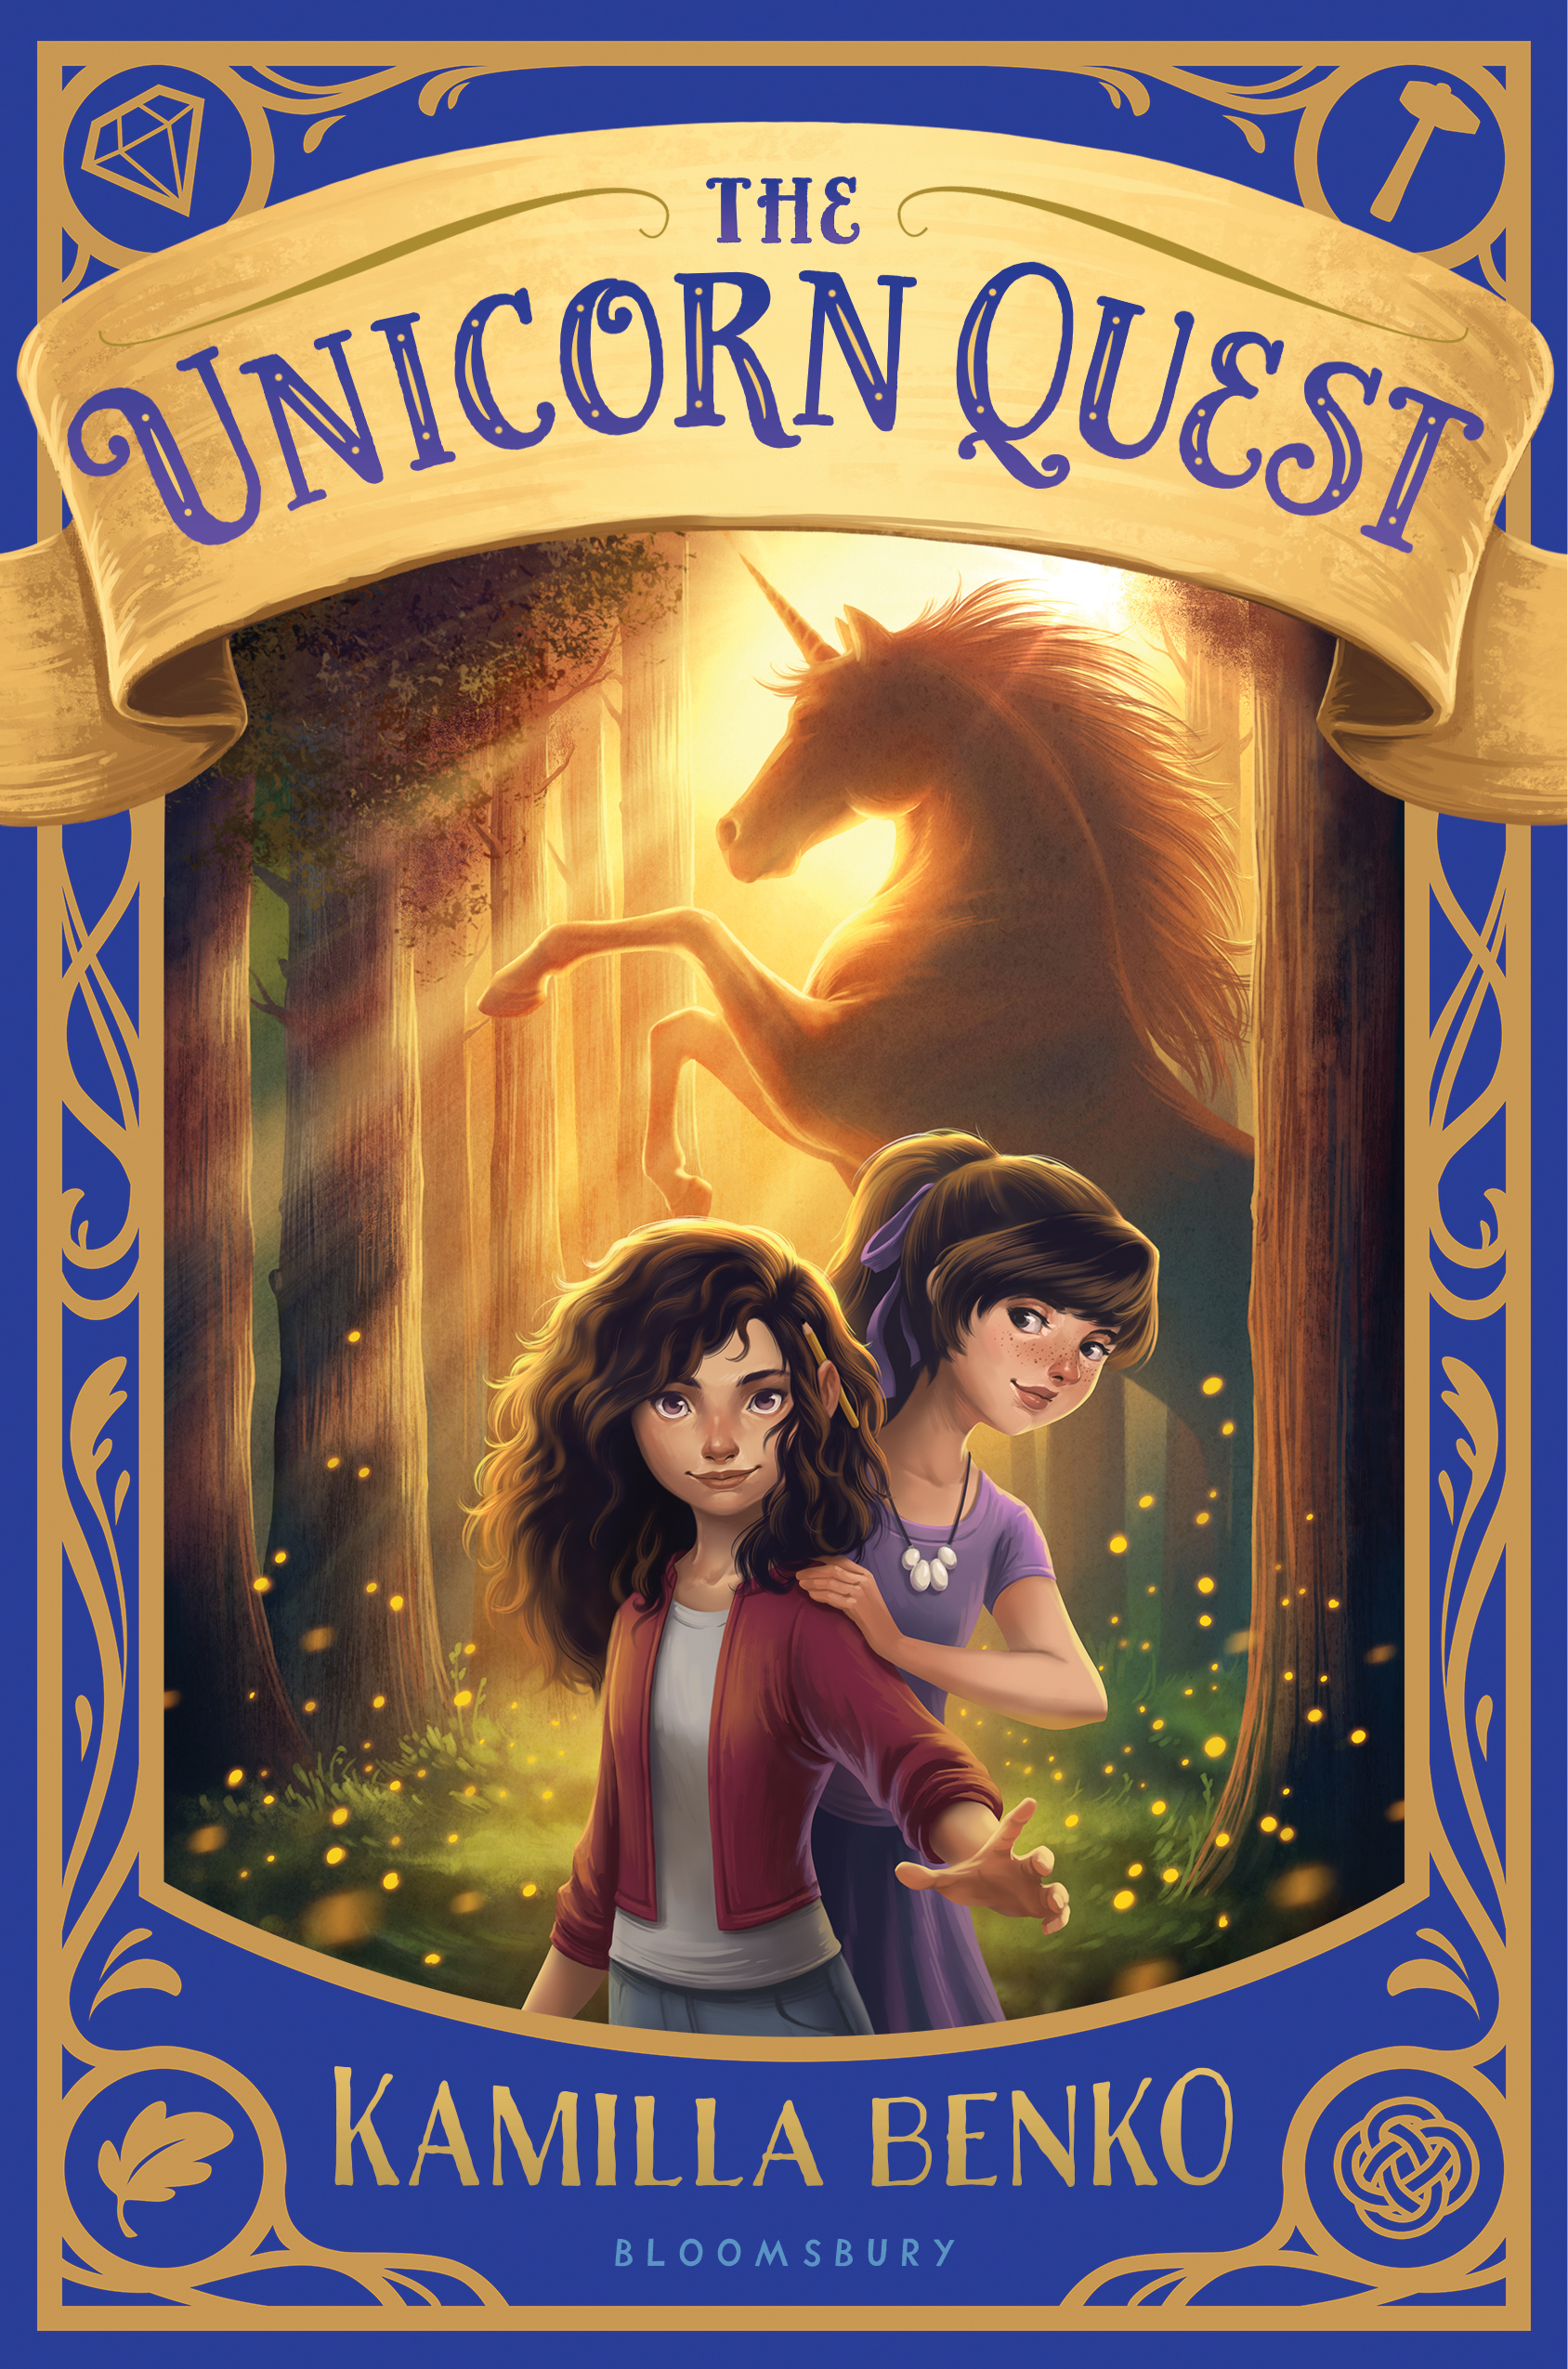 The Unicorn Quest:  Some Writing Advice and A Giveaway!